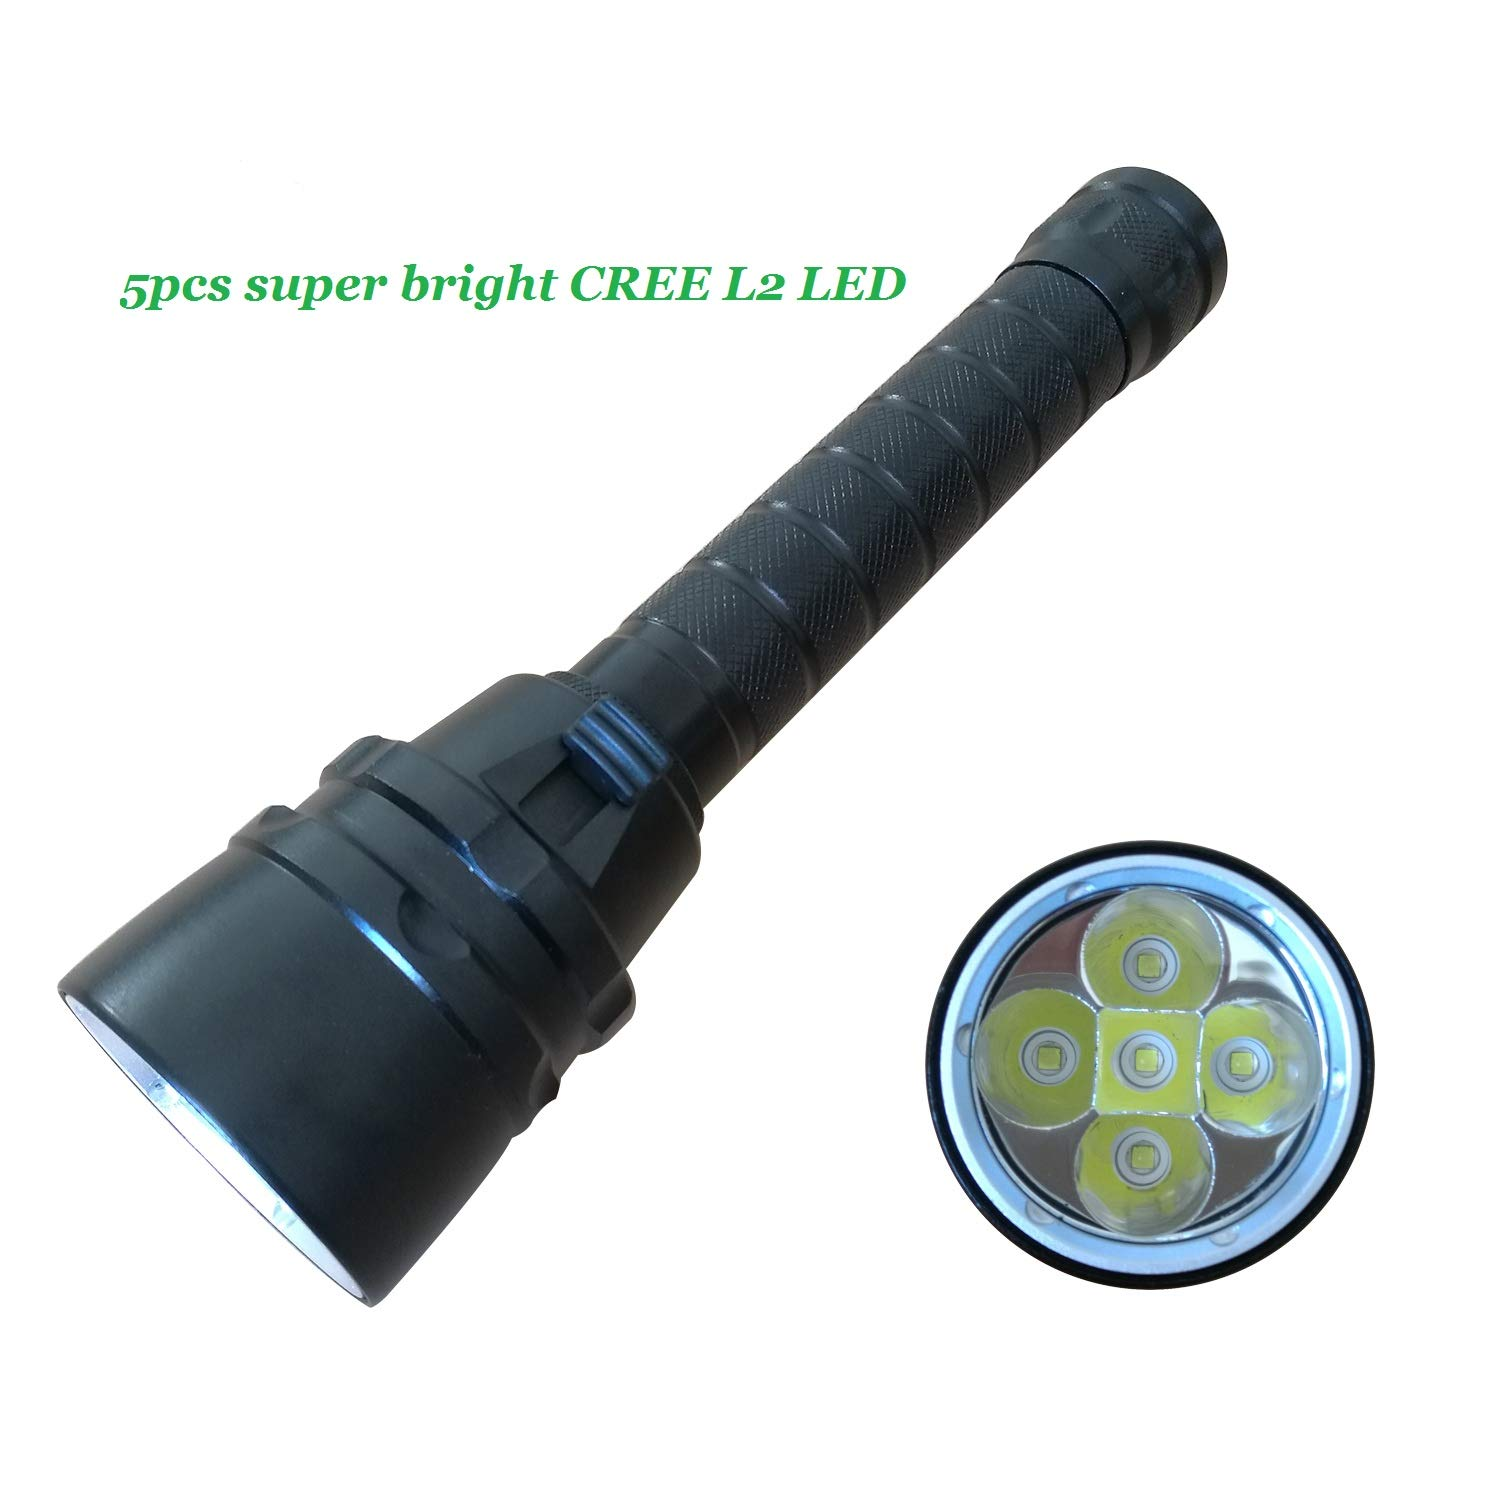 Goldengulf Professional Scuba Diving Flashlight 5PCS CREE L2 LED Super Bright 4800 Lumen Underwater 100M Submarine Light Battery and Charger Included